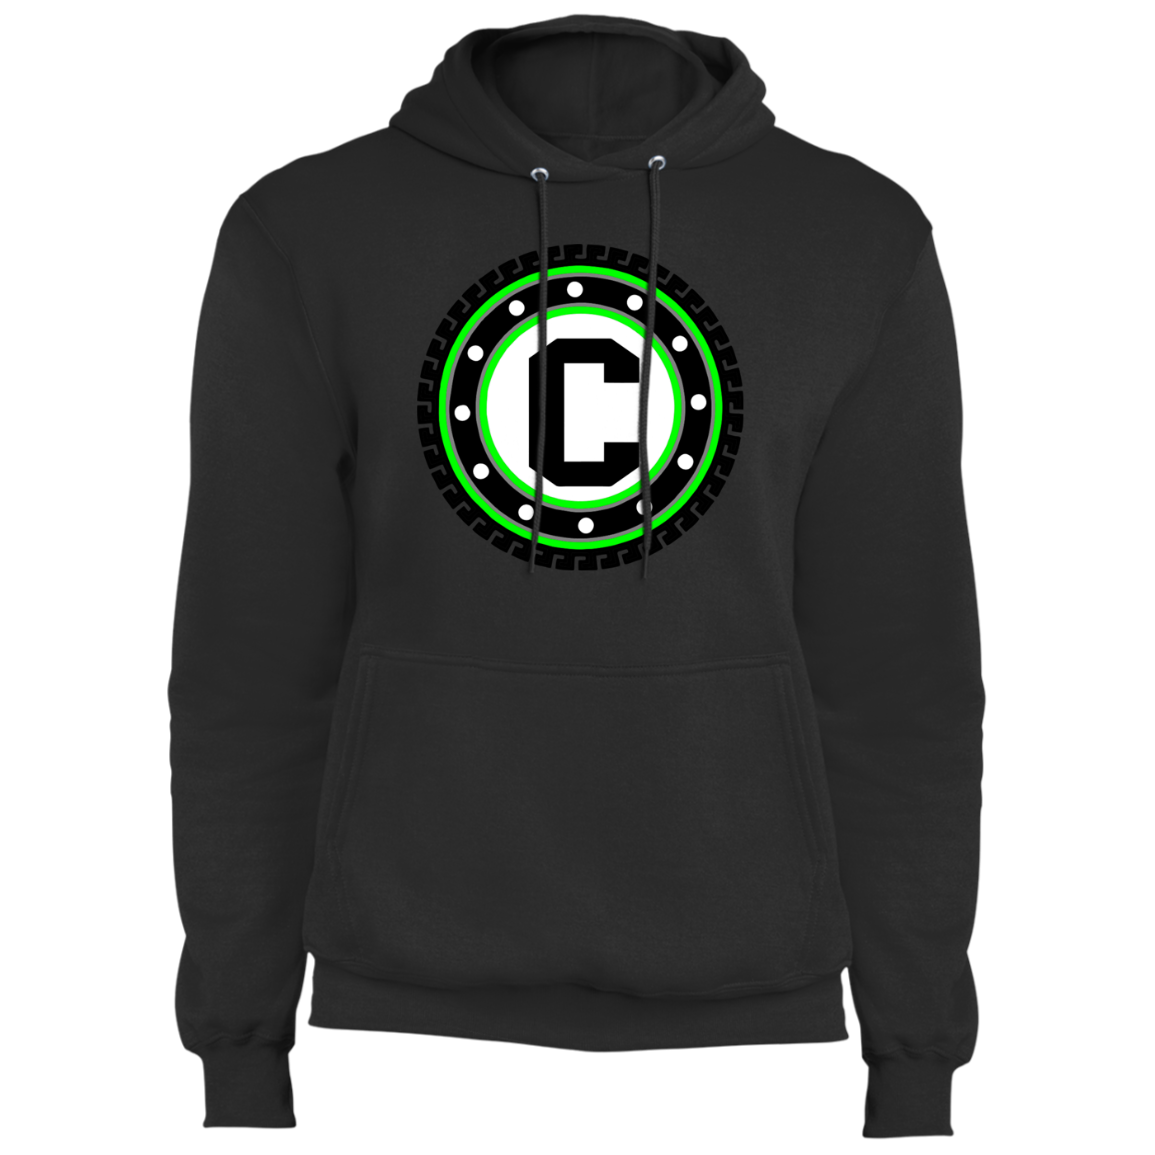 Emerald Fleece Sweatshirt